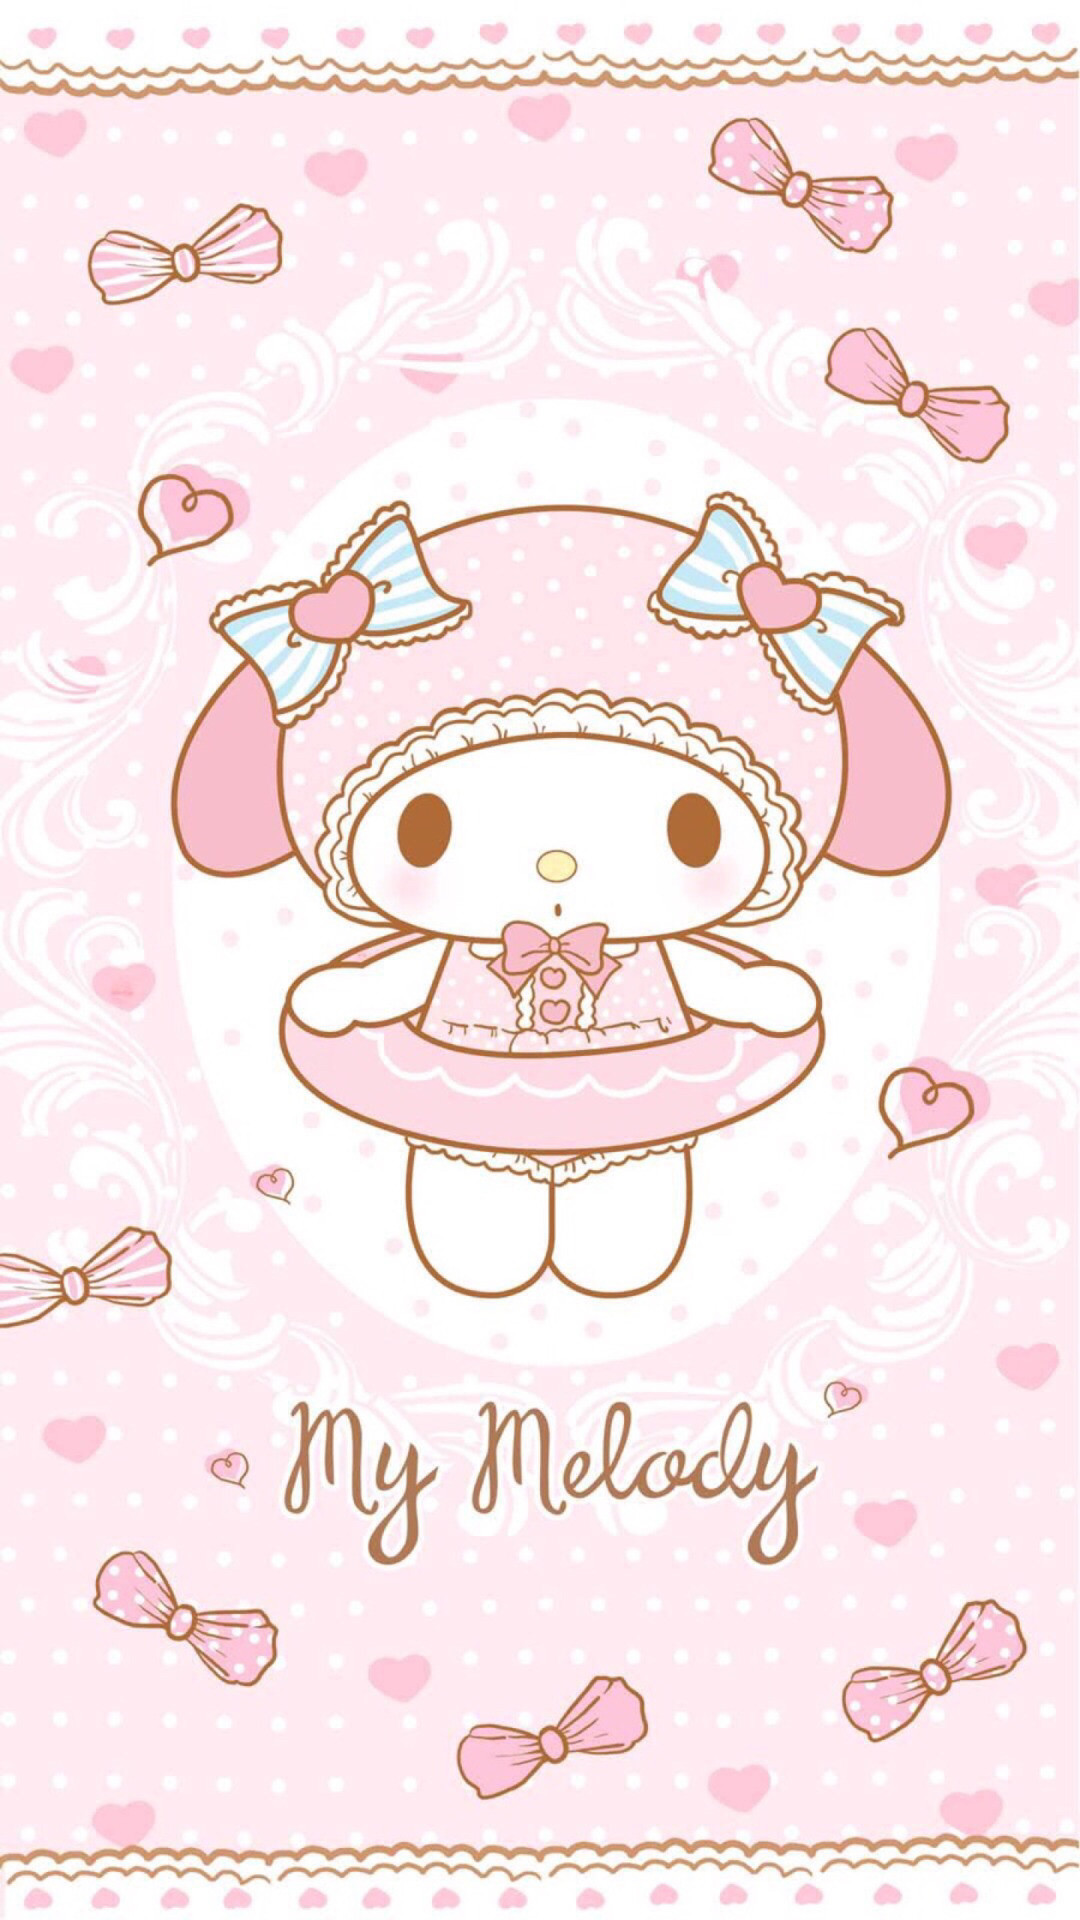 Rilakkuma Wallpaper Iphone 4 My Melody Wallpaper For Iphone 76 Images